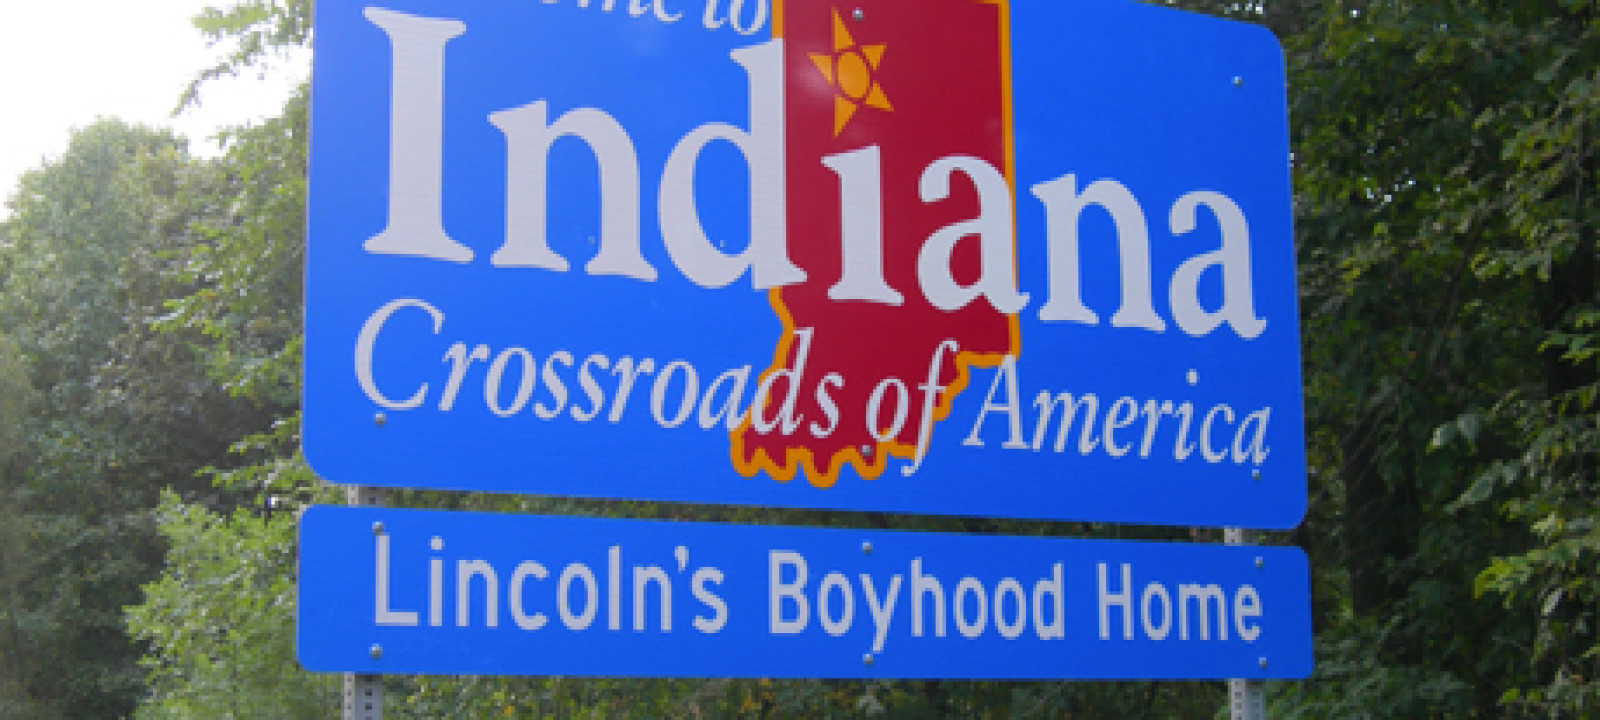 460x300_welcome_to_indiana